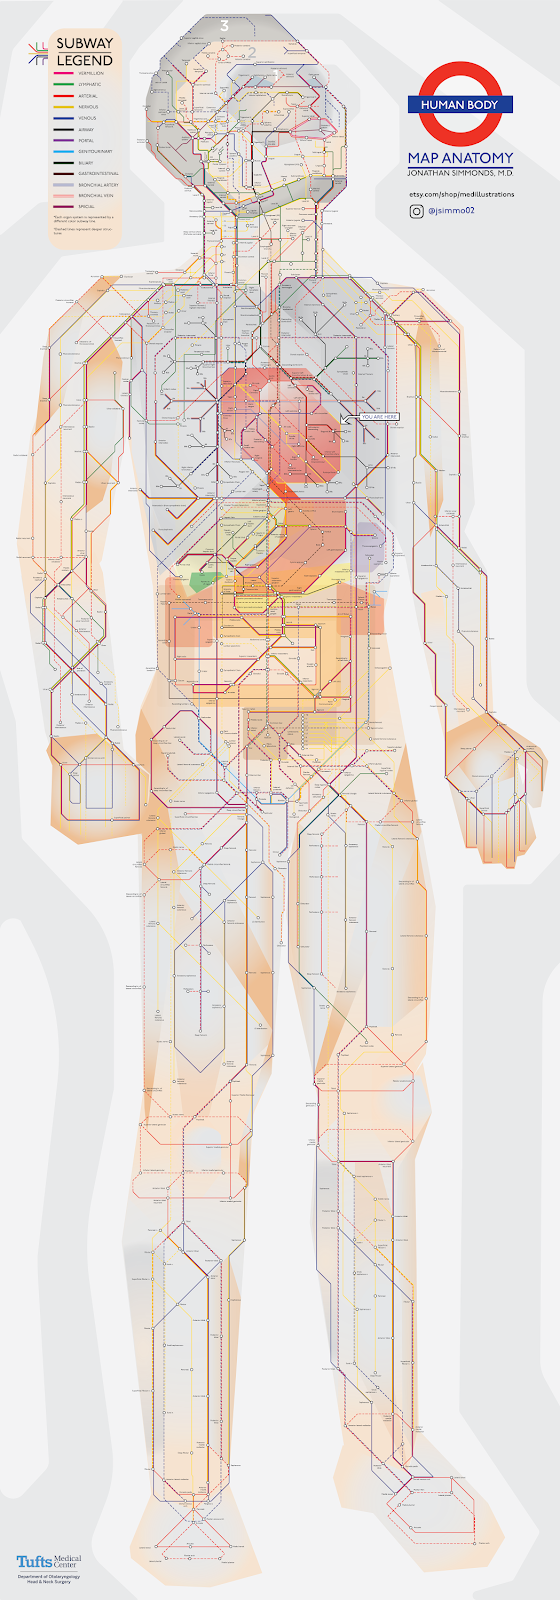 Map Anatomy in the style of a metro map